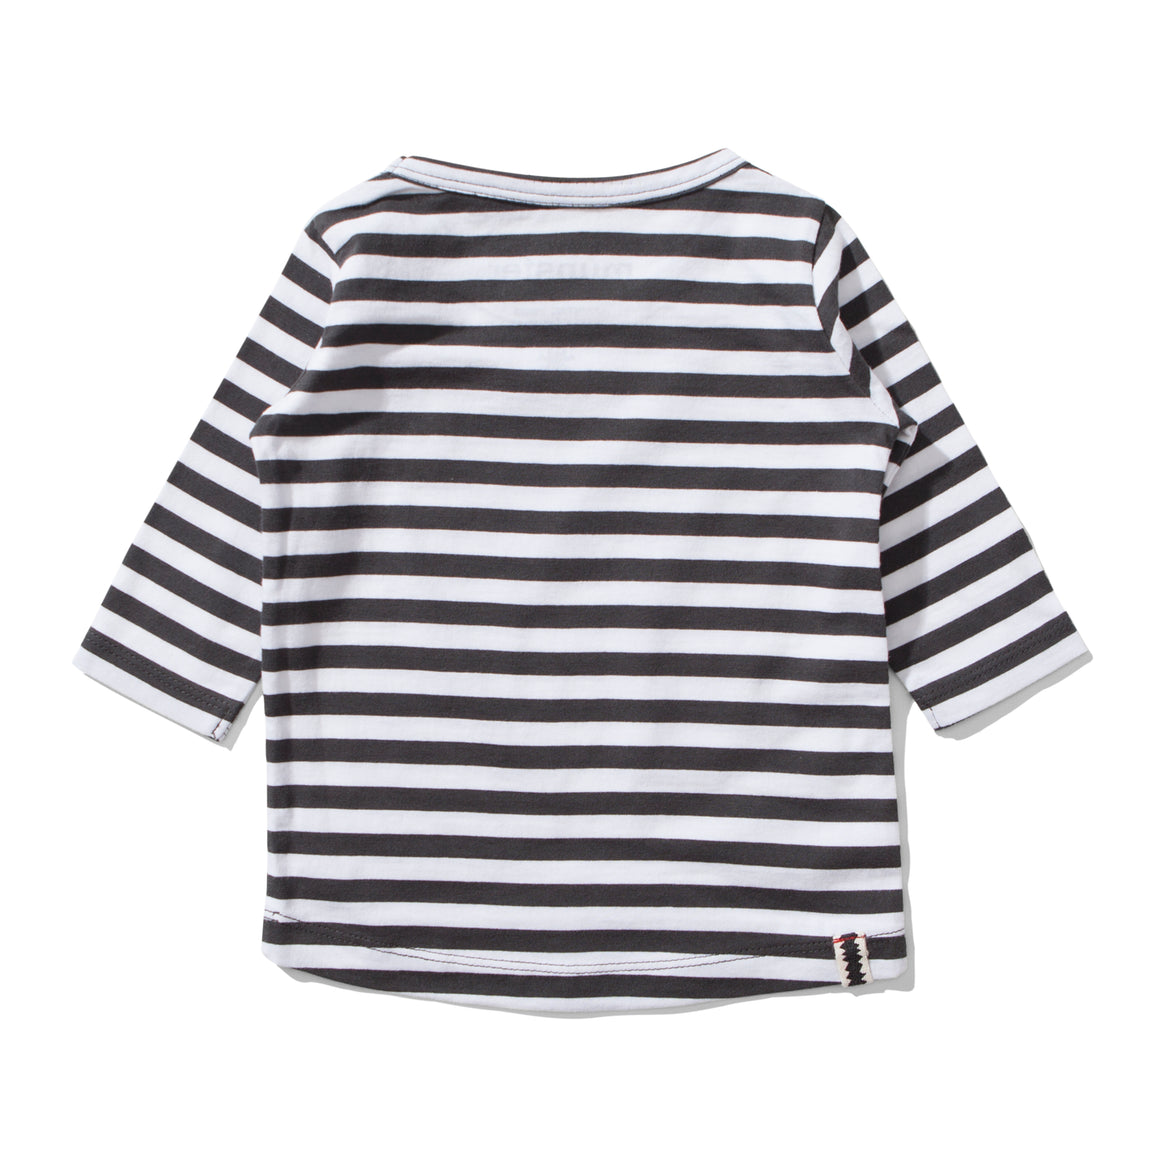 MUNSTERKIDS Adams Striped Long-sleeve Tee - Ash Black - Last One!! Size: 6-12M